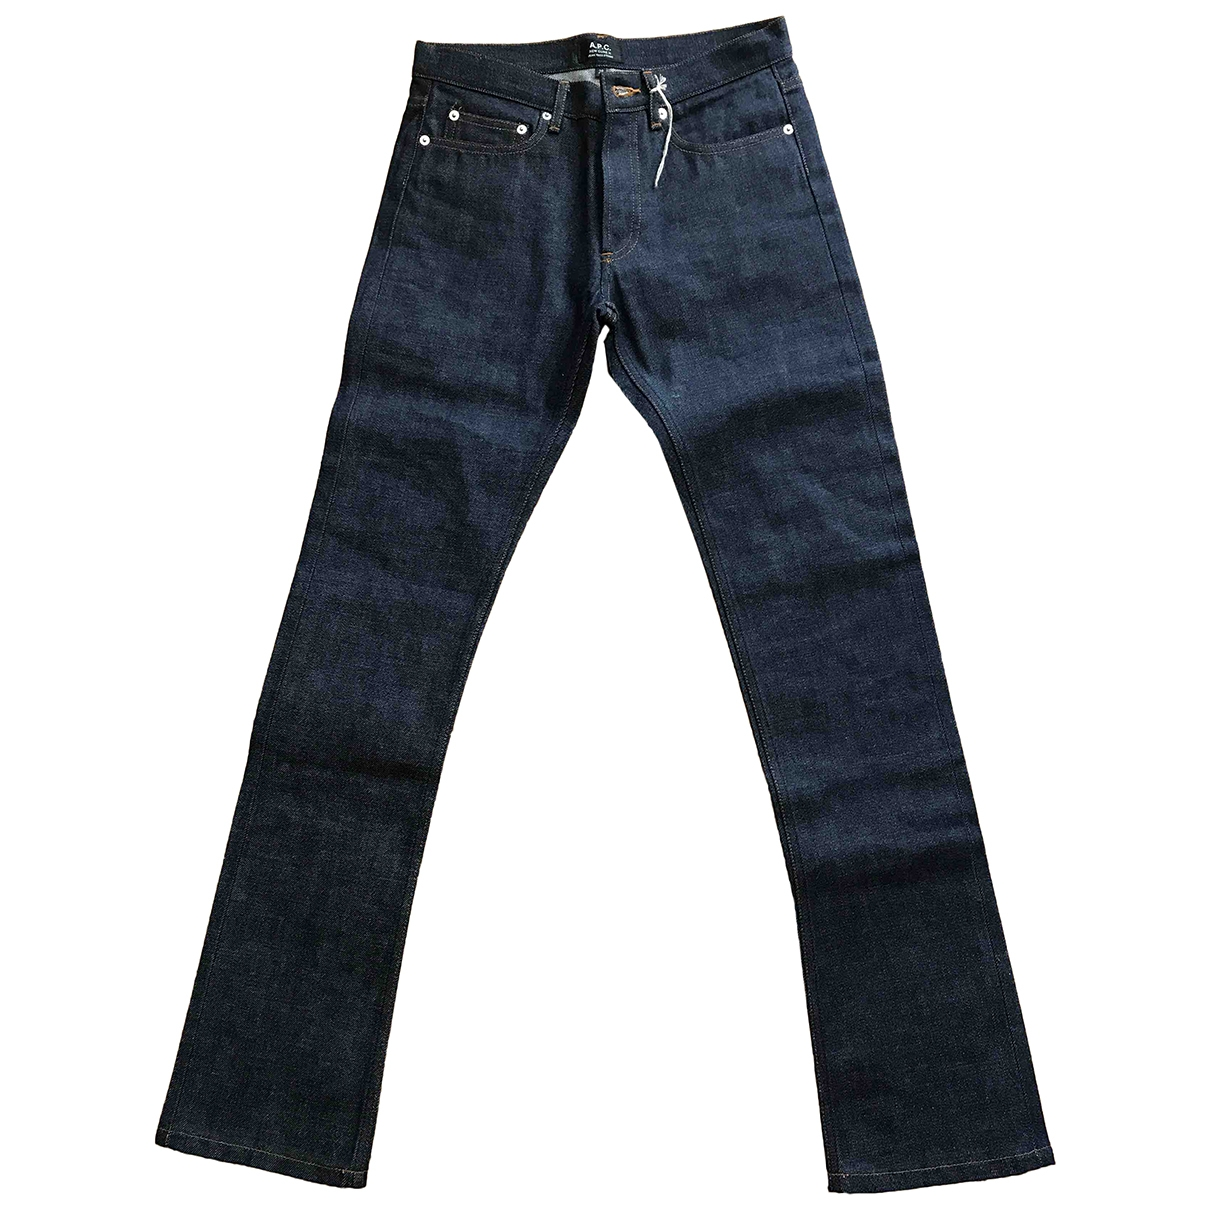 Apc Jean etroit standard Blue Denim - Jeans Jeans for Women 28 US